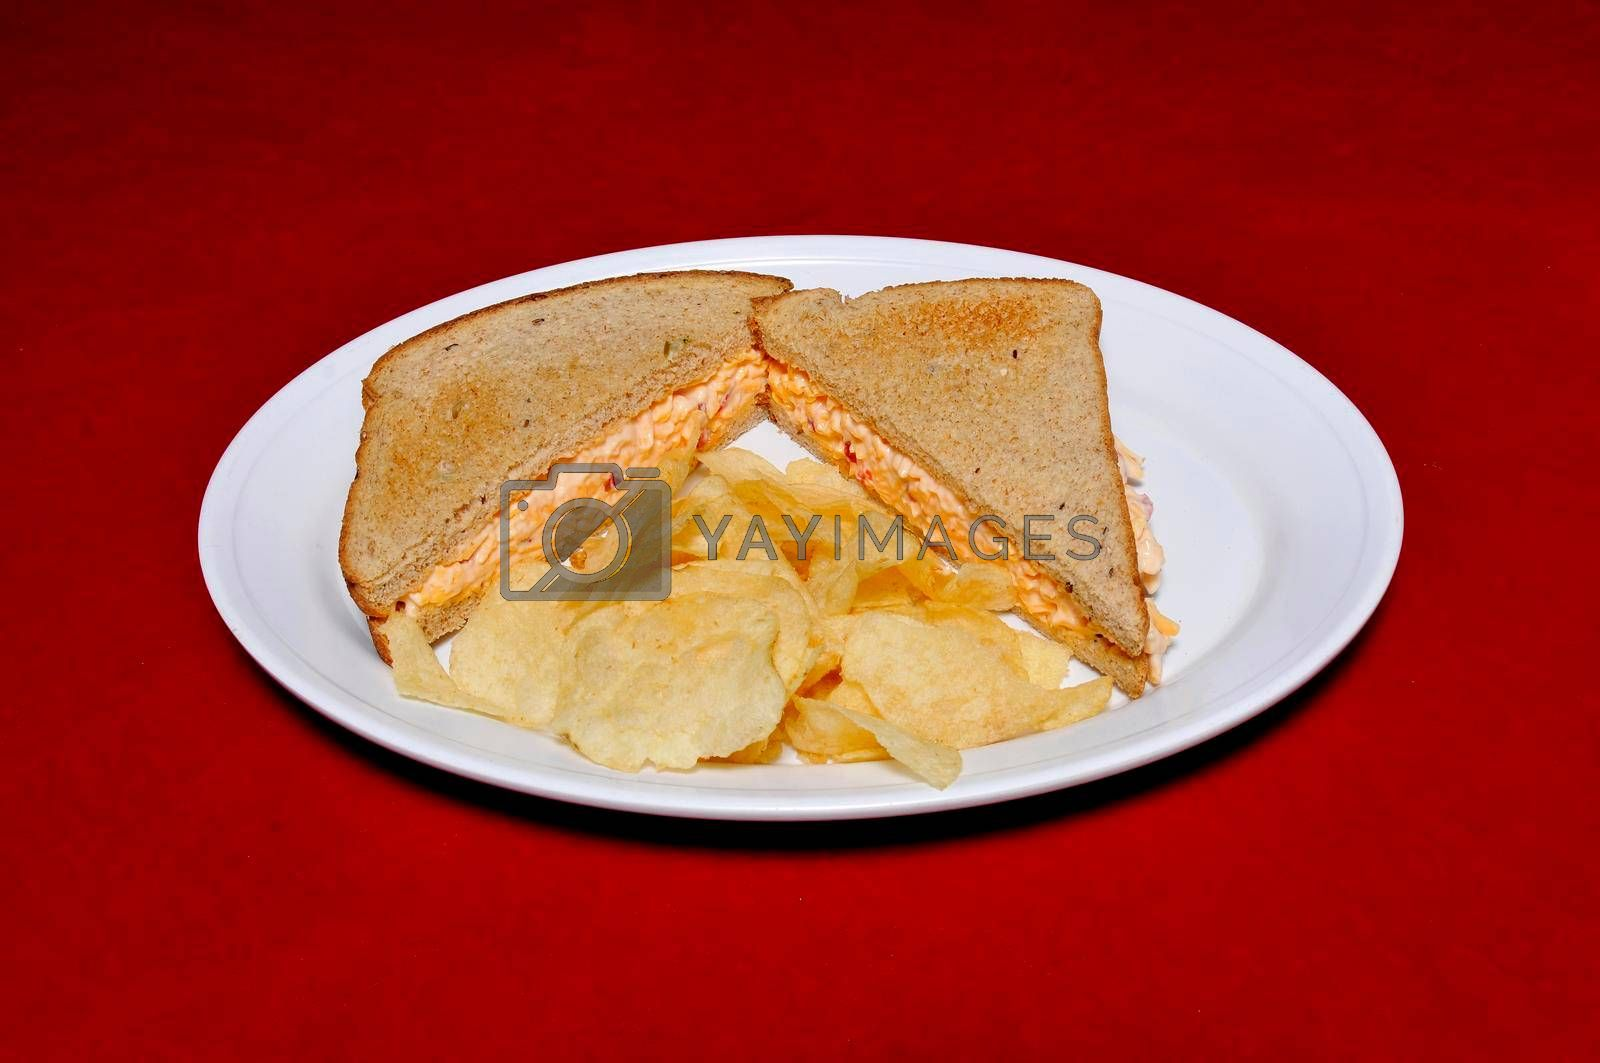 Delicious American cuisine known as the Pimento Cheese Sandwich